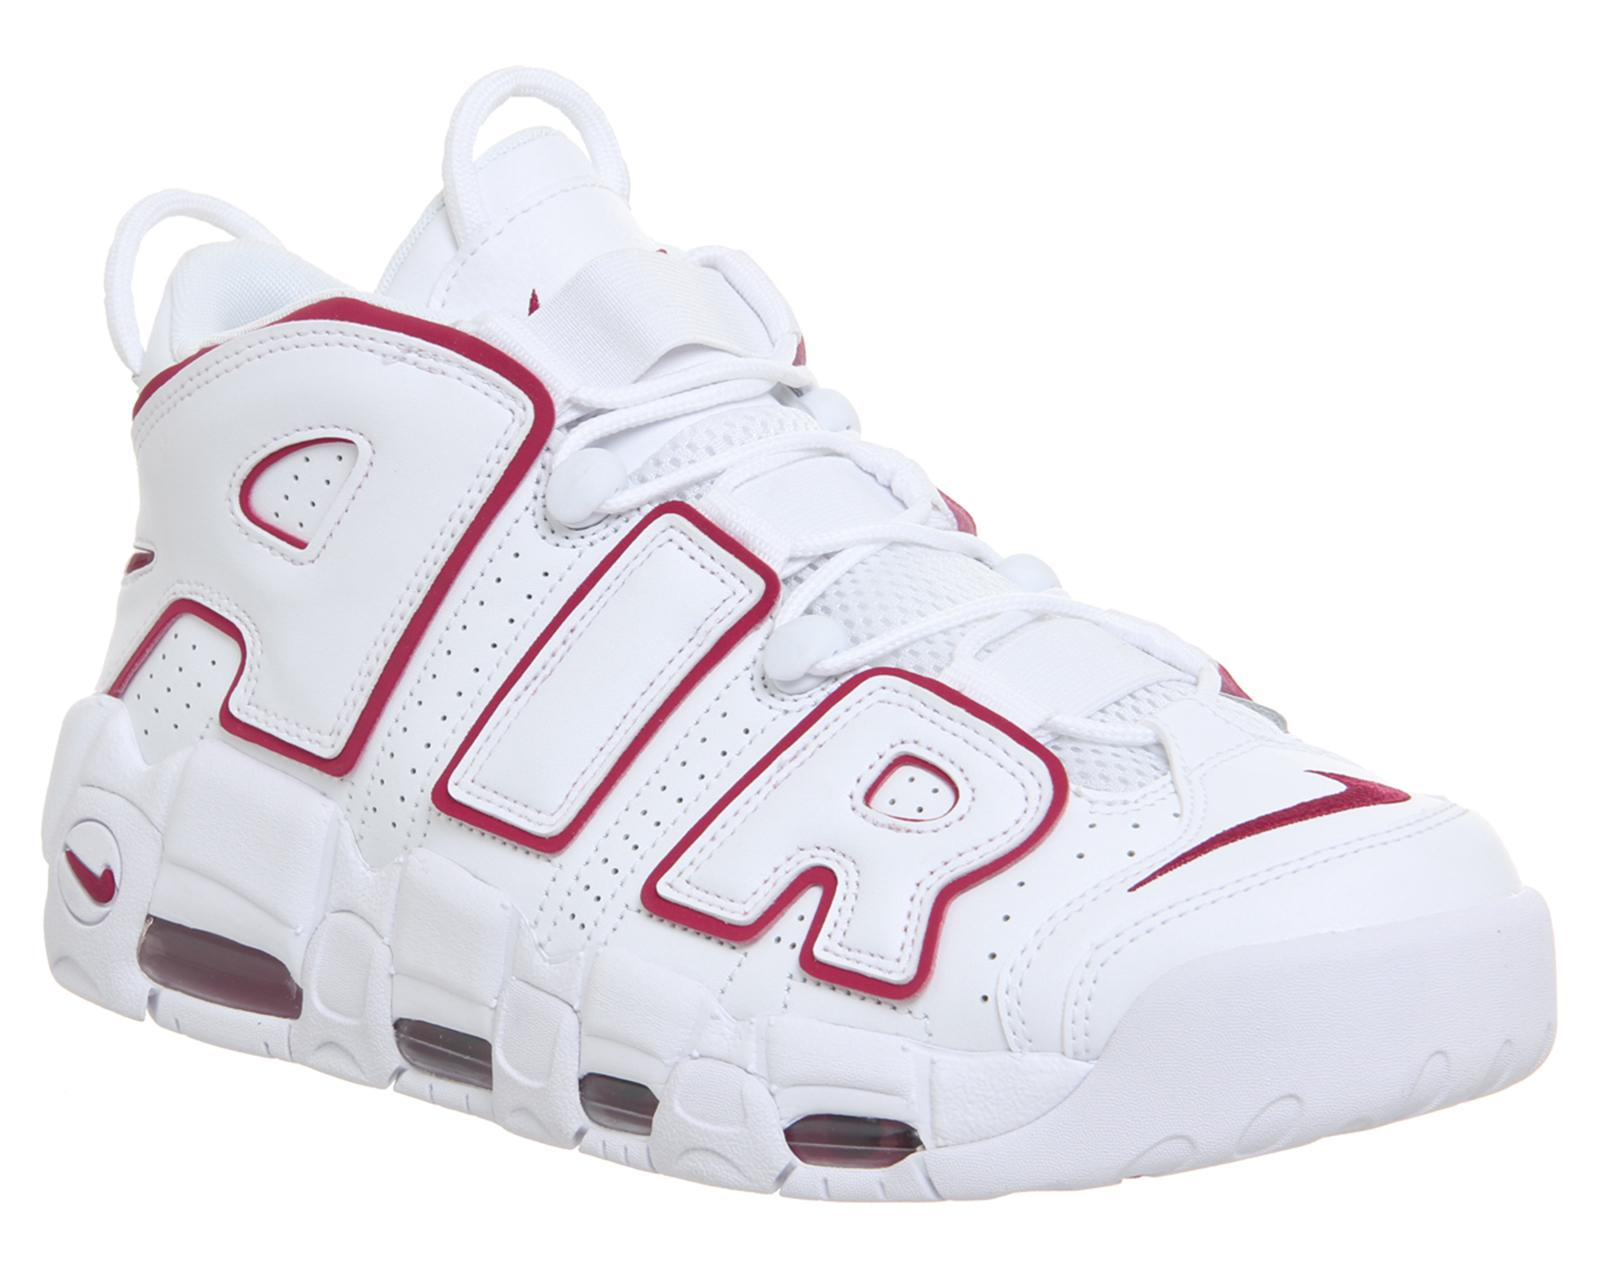 Lyst - Nike Air More Uptempo Trainers in White for Men 8645e8026